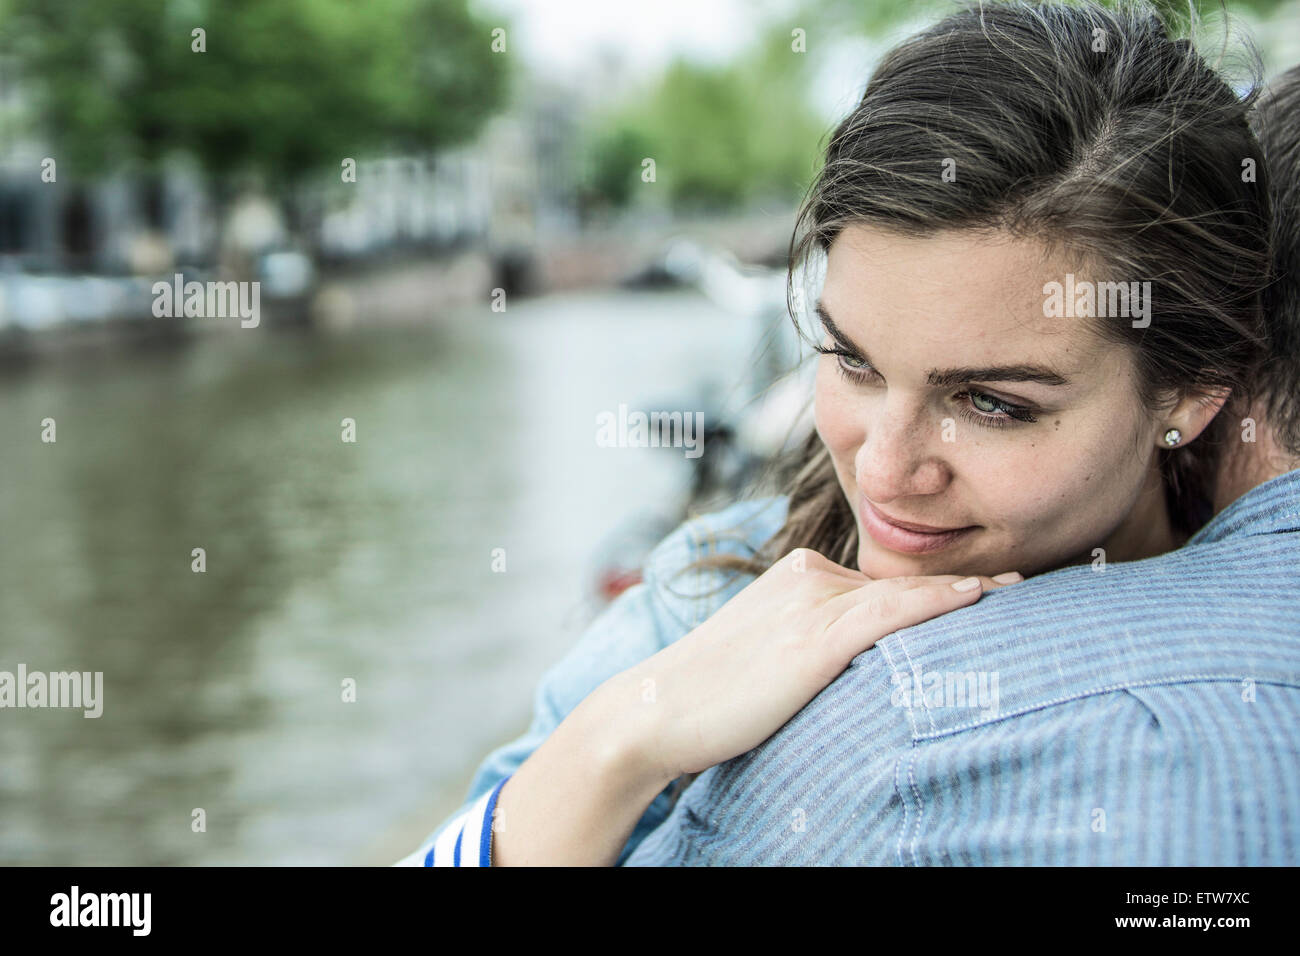 Netherlands, Amsterdam, woman embracing man in front of town canal - Stock Image